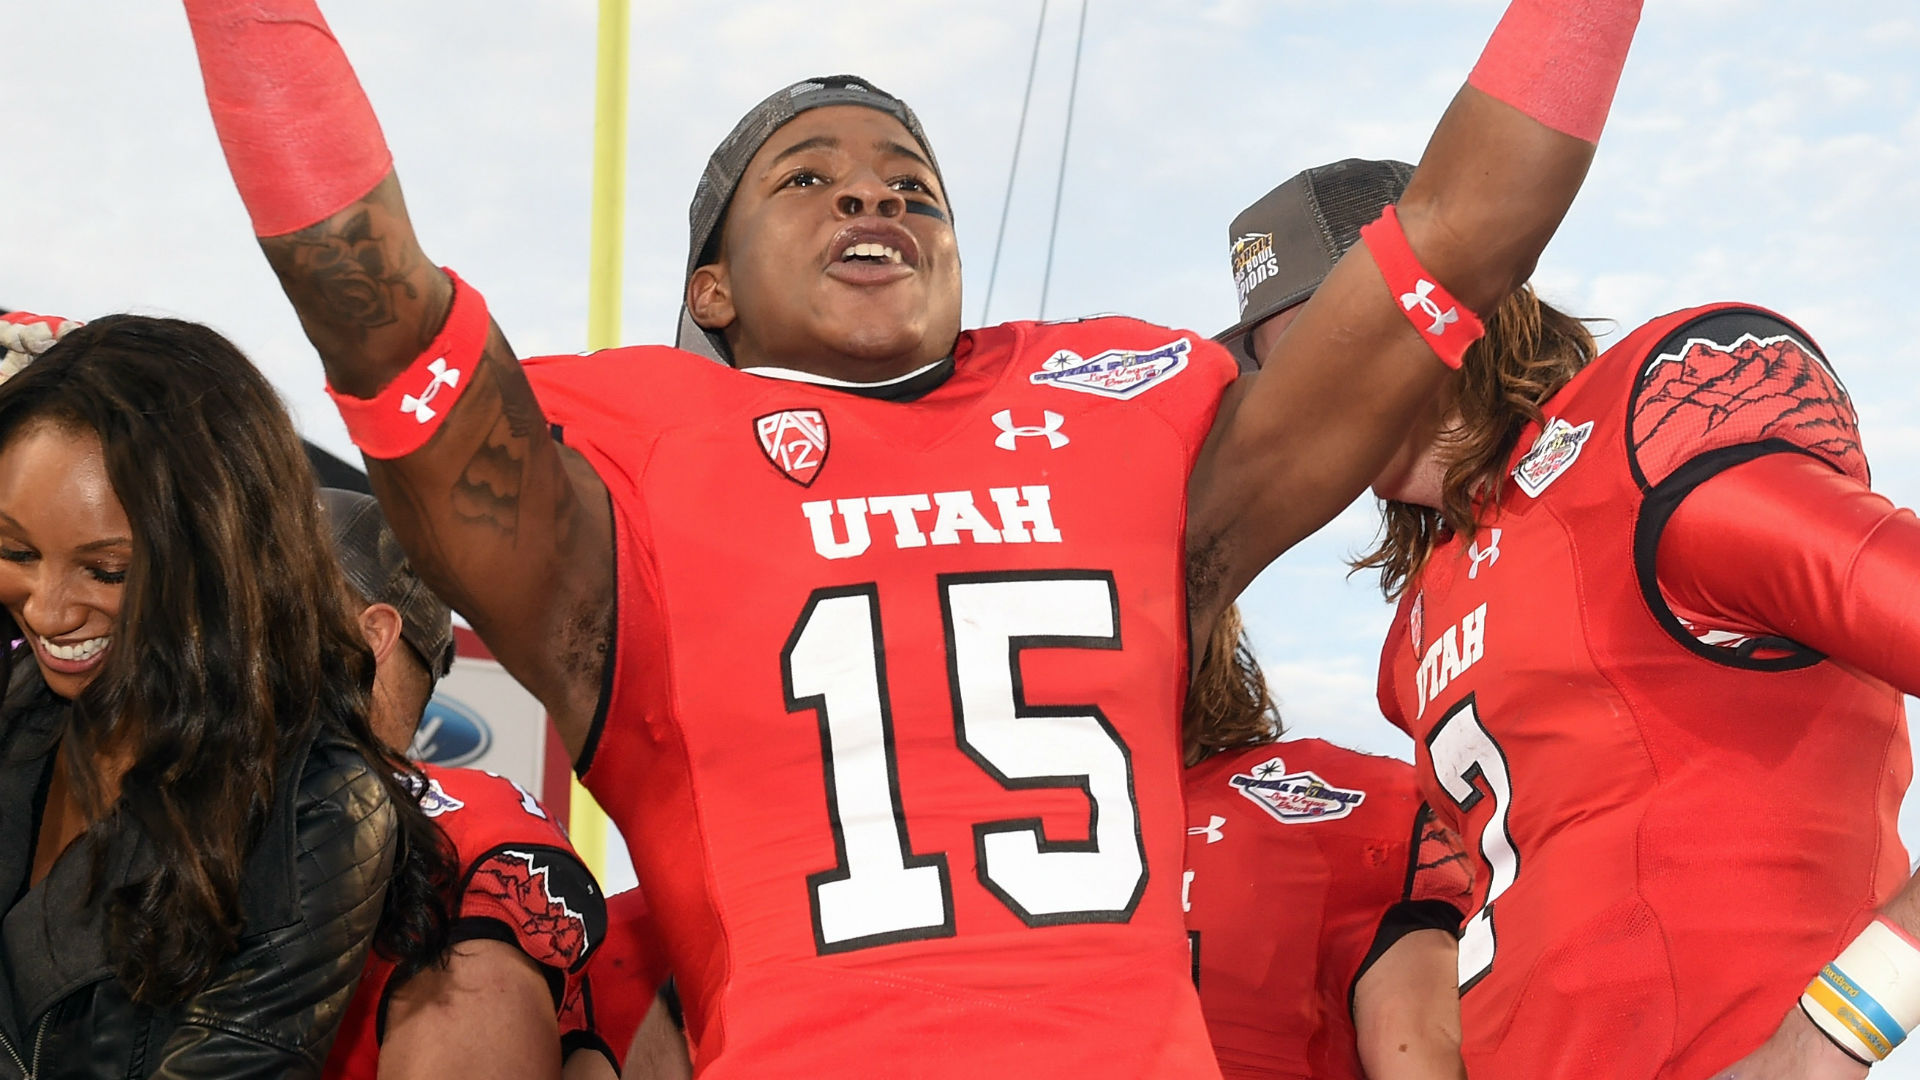 Utah CB faces robbery charge after alleged online scheme